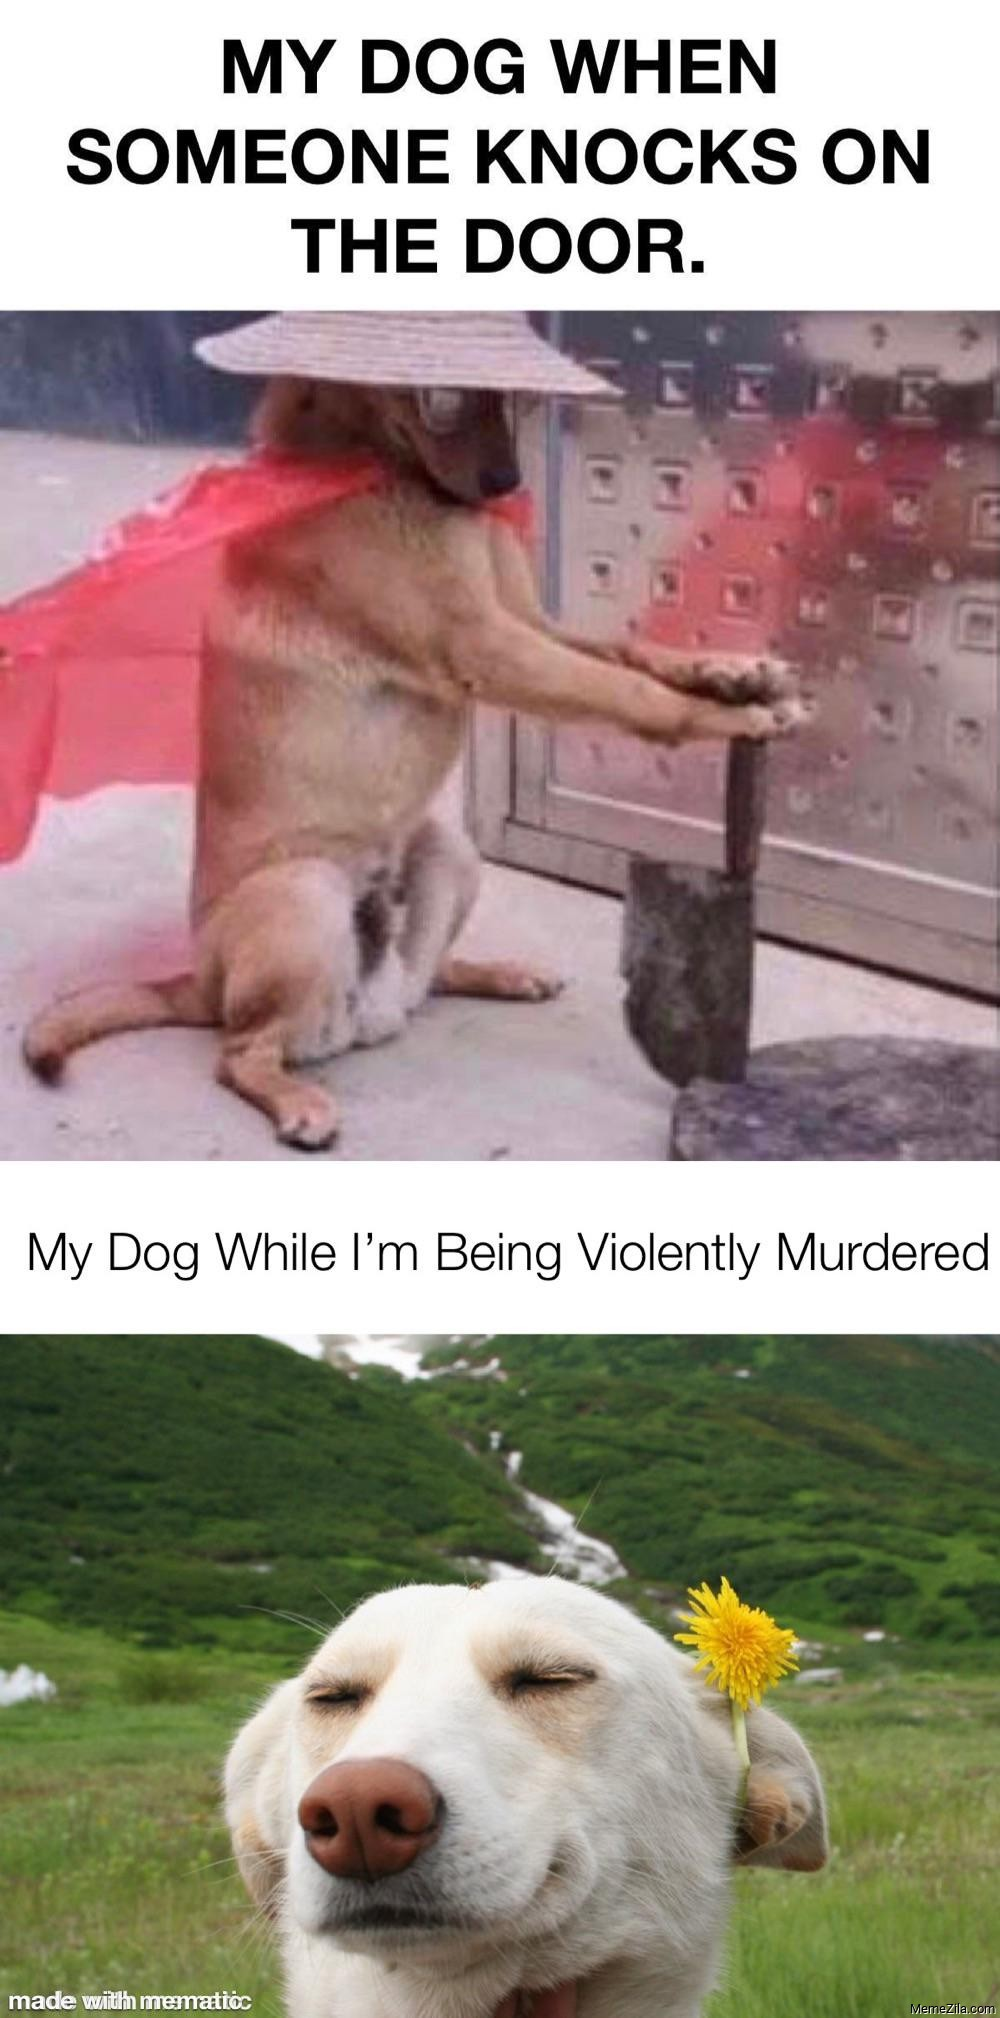 My dog when someone knocks on the door vs My dog while I am being violently murdered meme